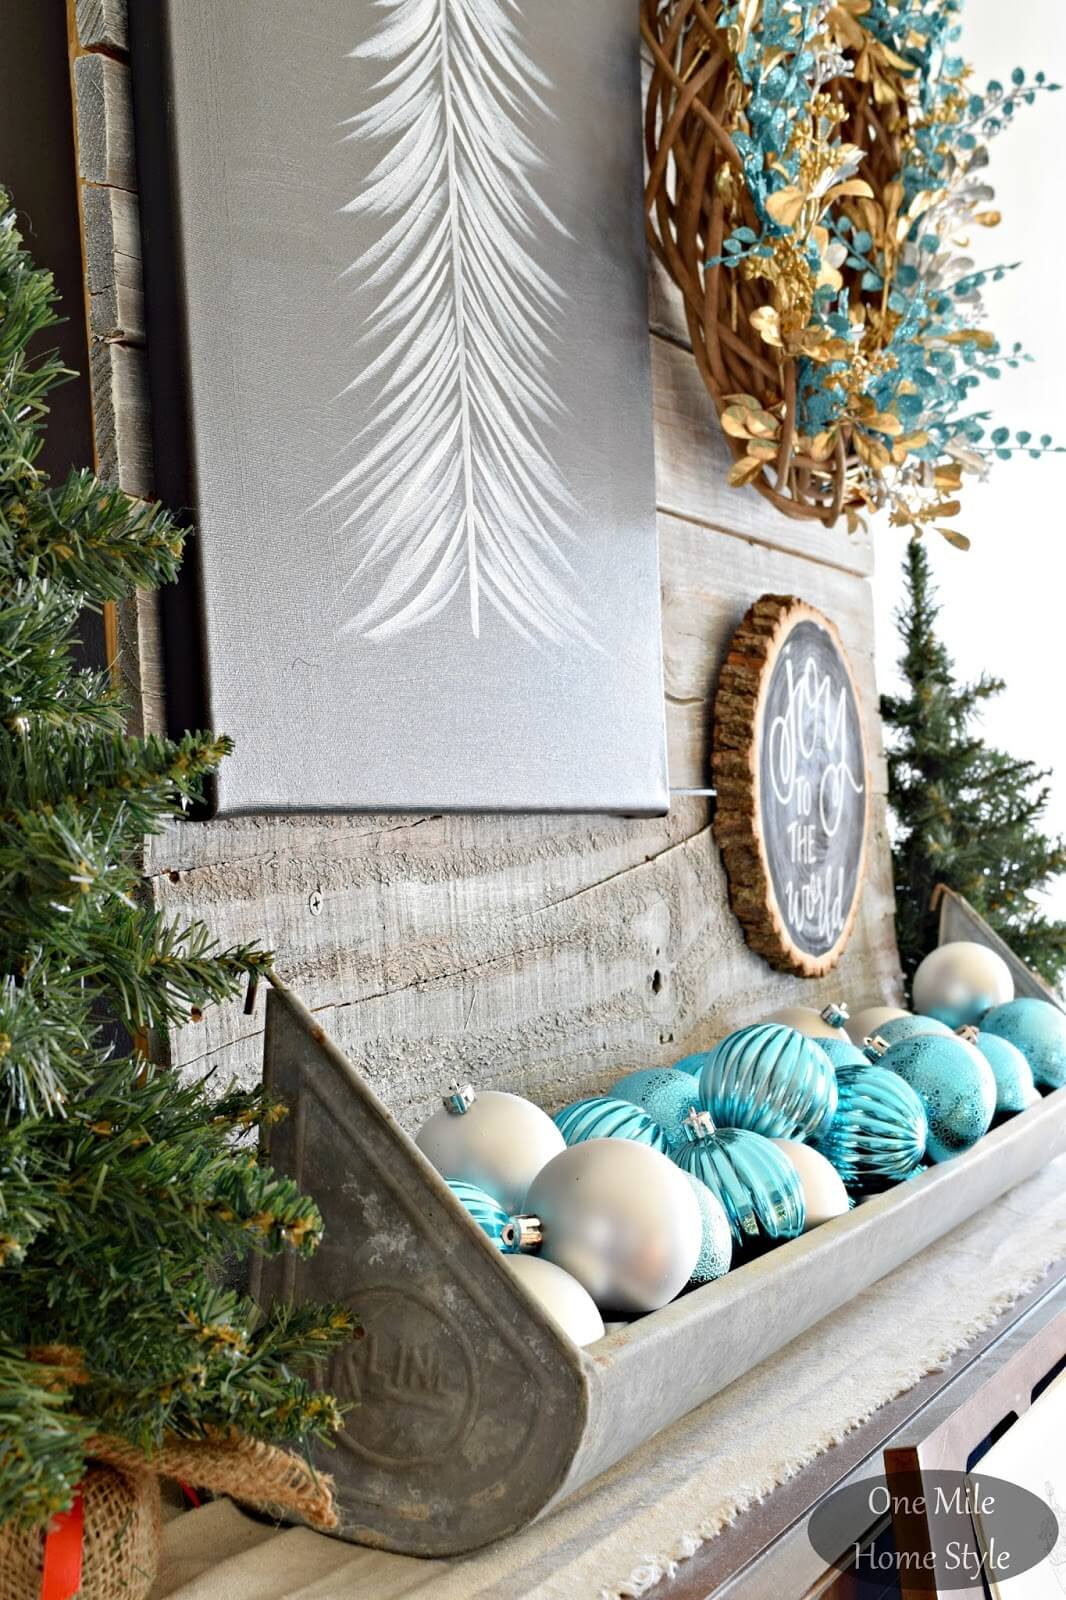 Overflowing Ornaments of Holiday Joy